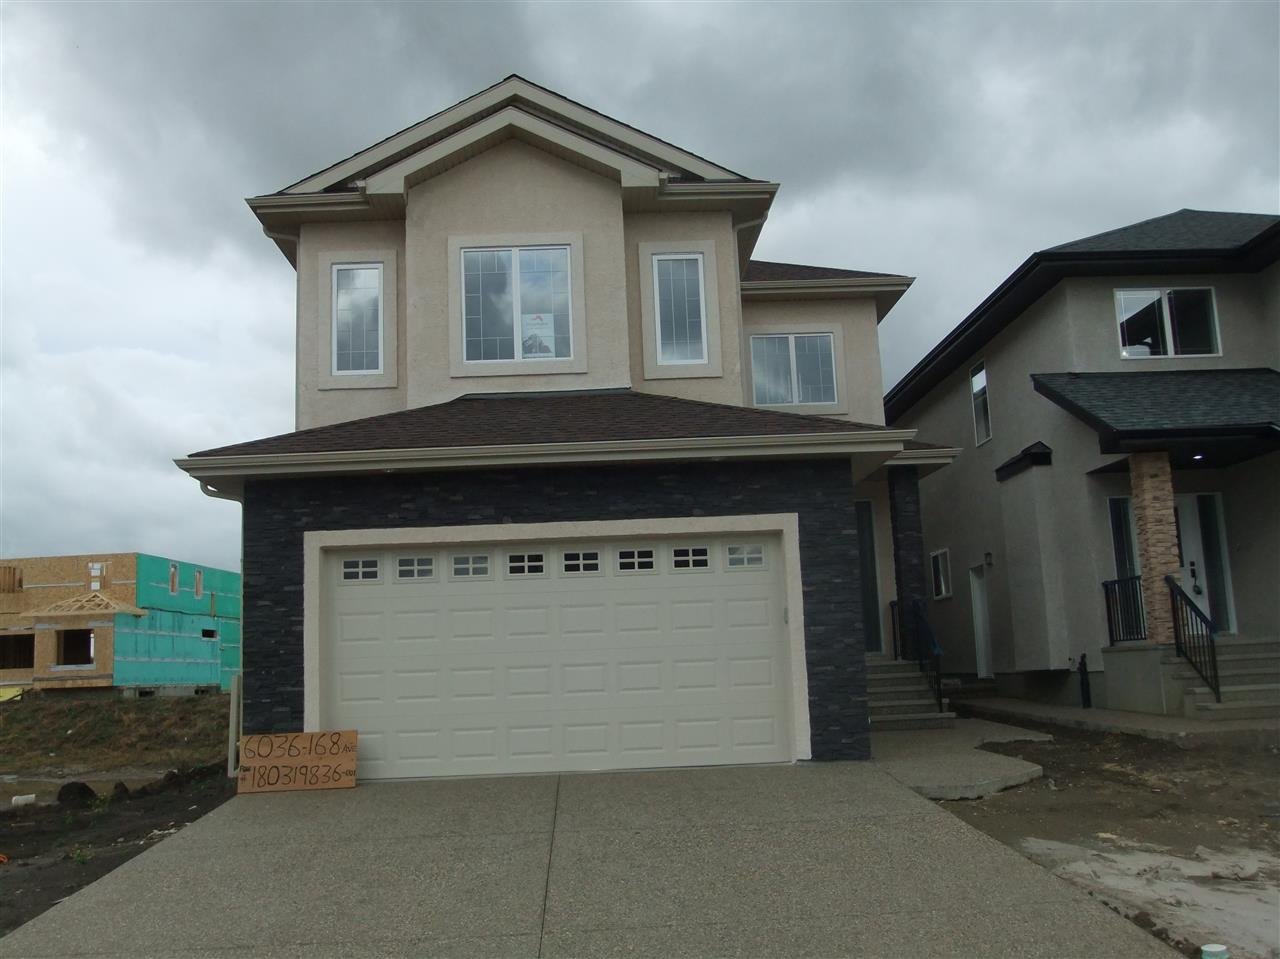 Main Photo: 6036 168 Avenue in Edmonton: Zone 03 House for sale : MLS(r) # E4026032